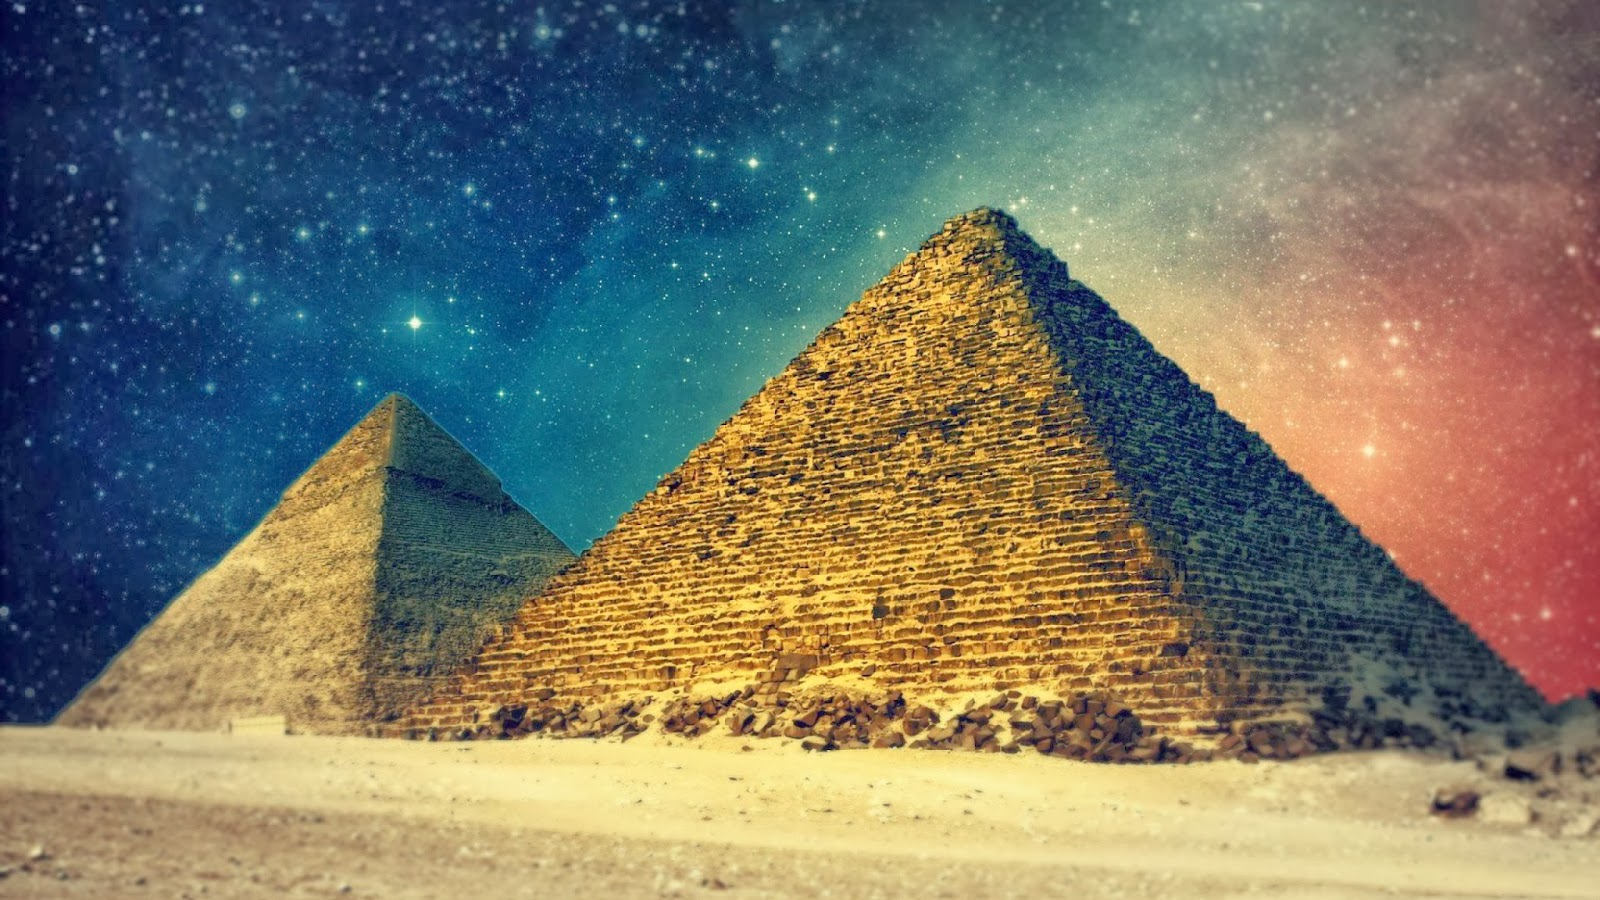 Studied Reveal the Secret Power of the Pyramidal Shape